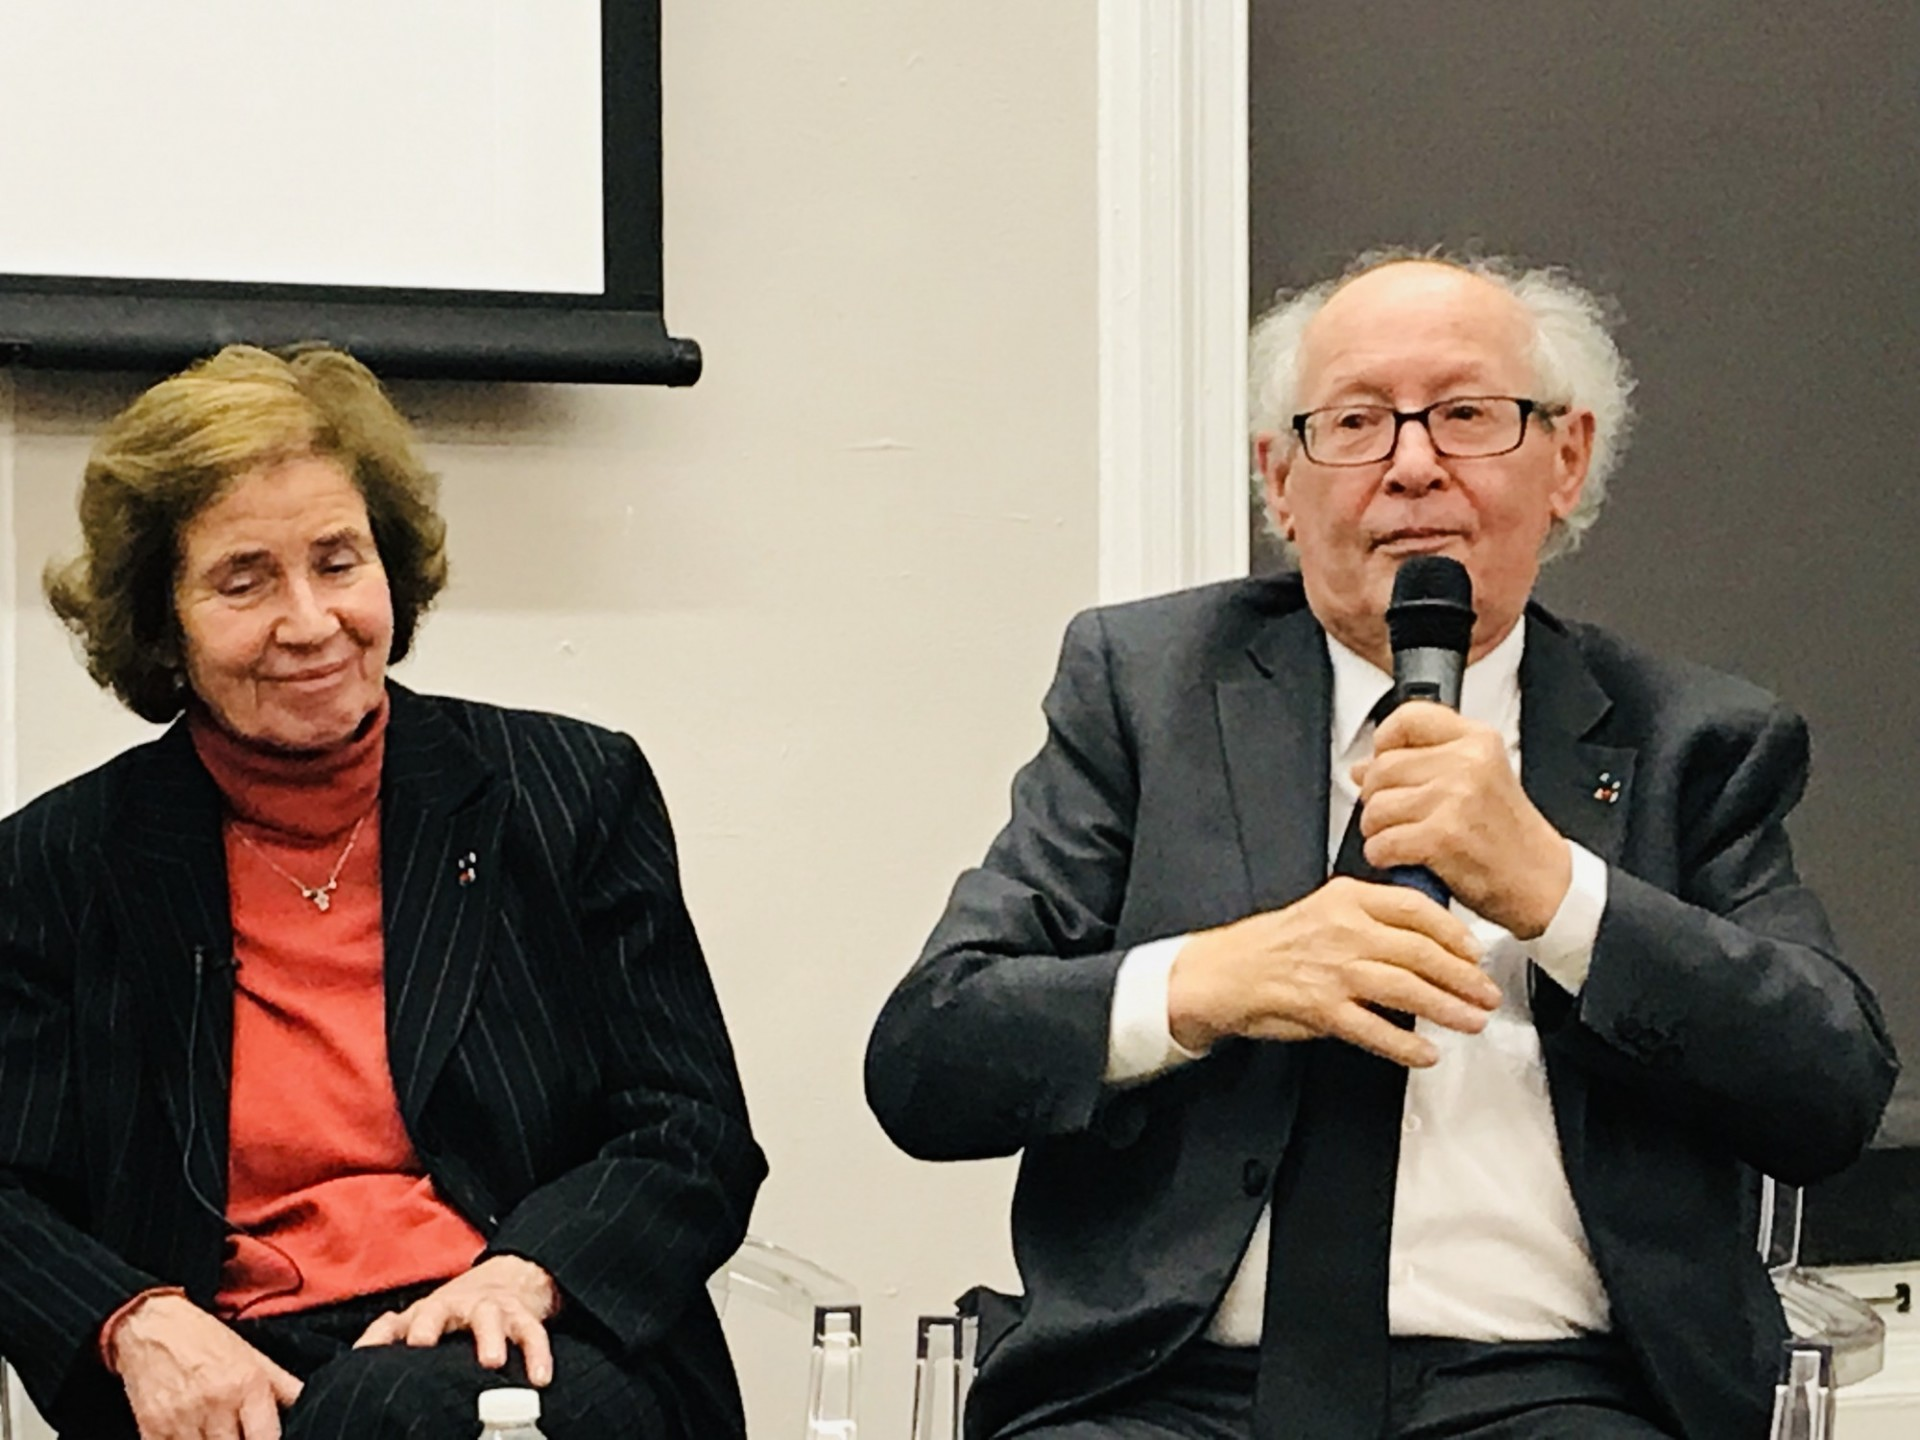 The Future of Memory. Serge and Beate Klarsfeld, in conversation with Clémence Boulouque